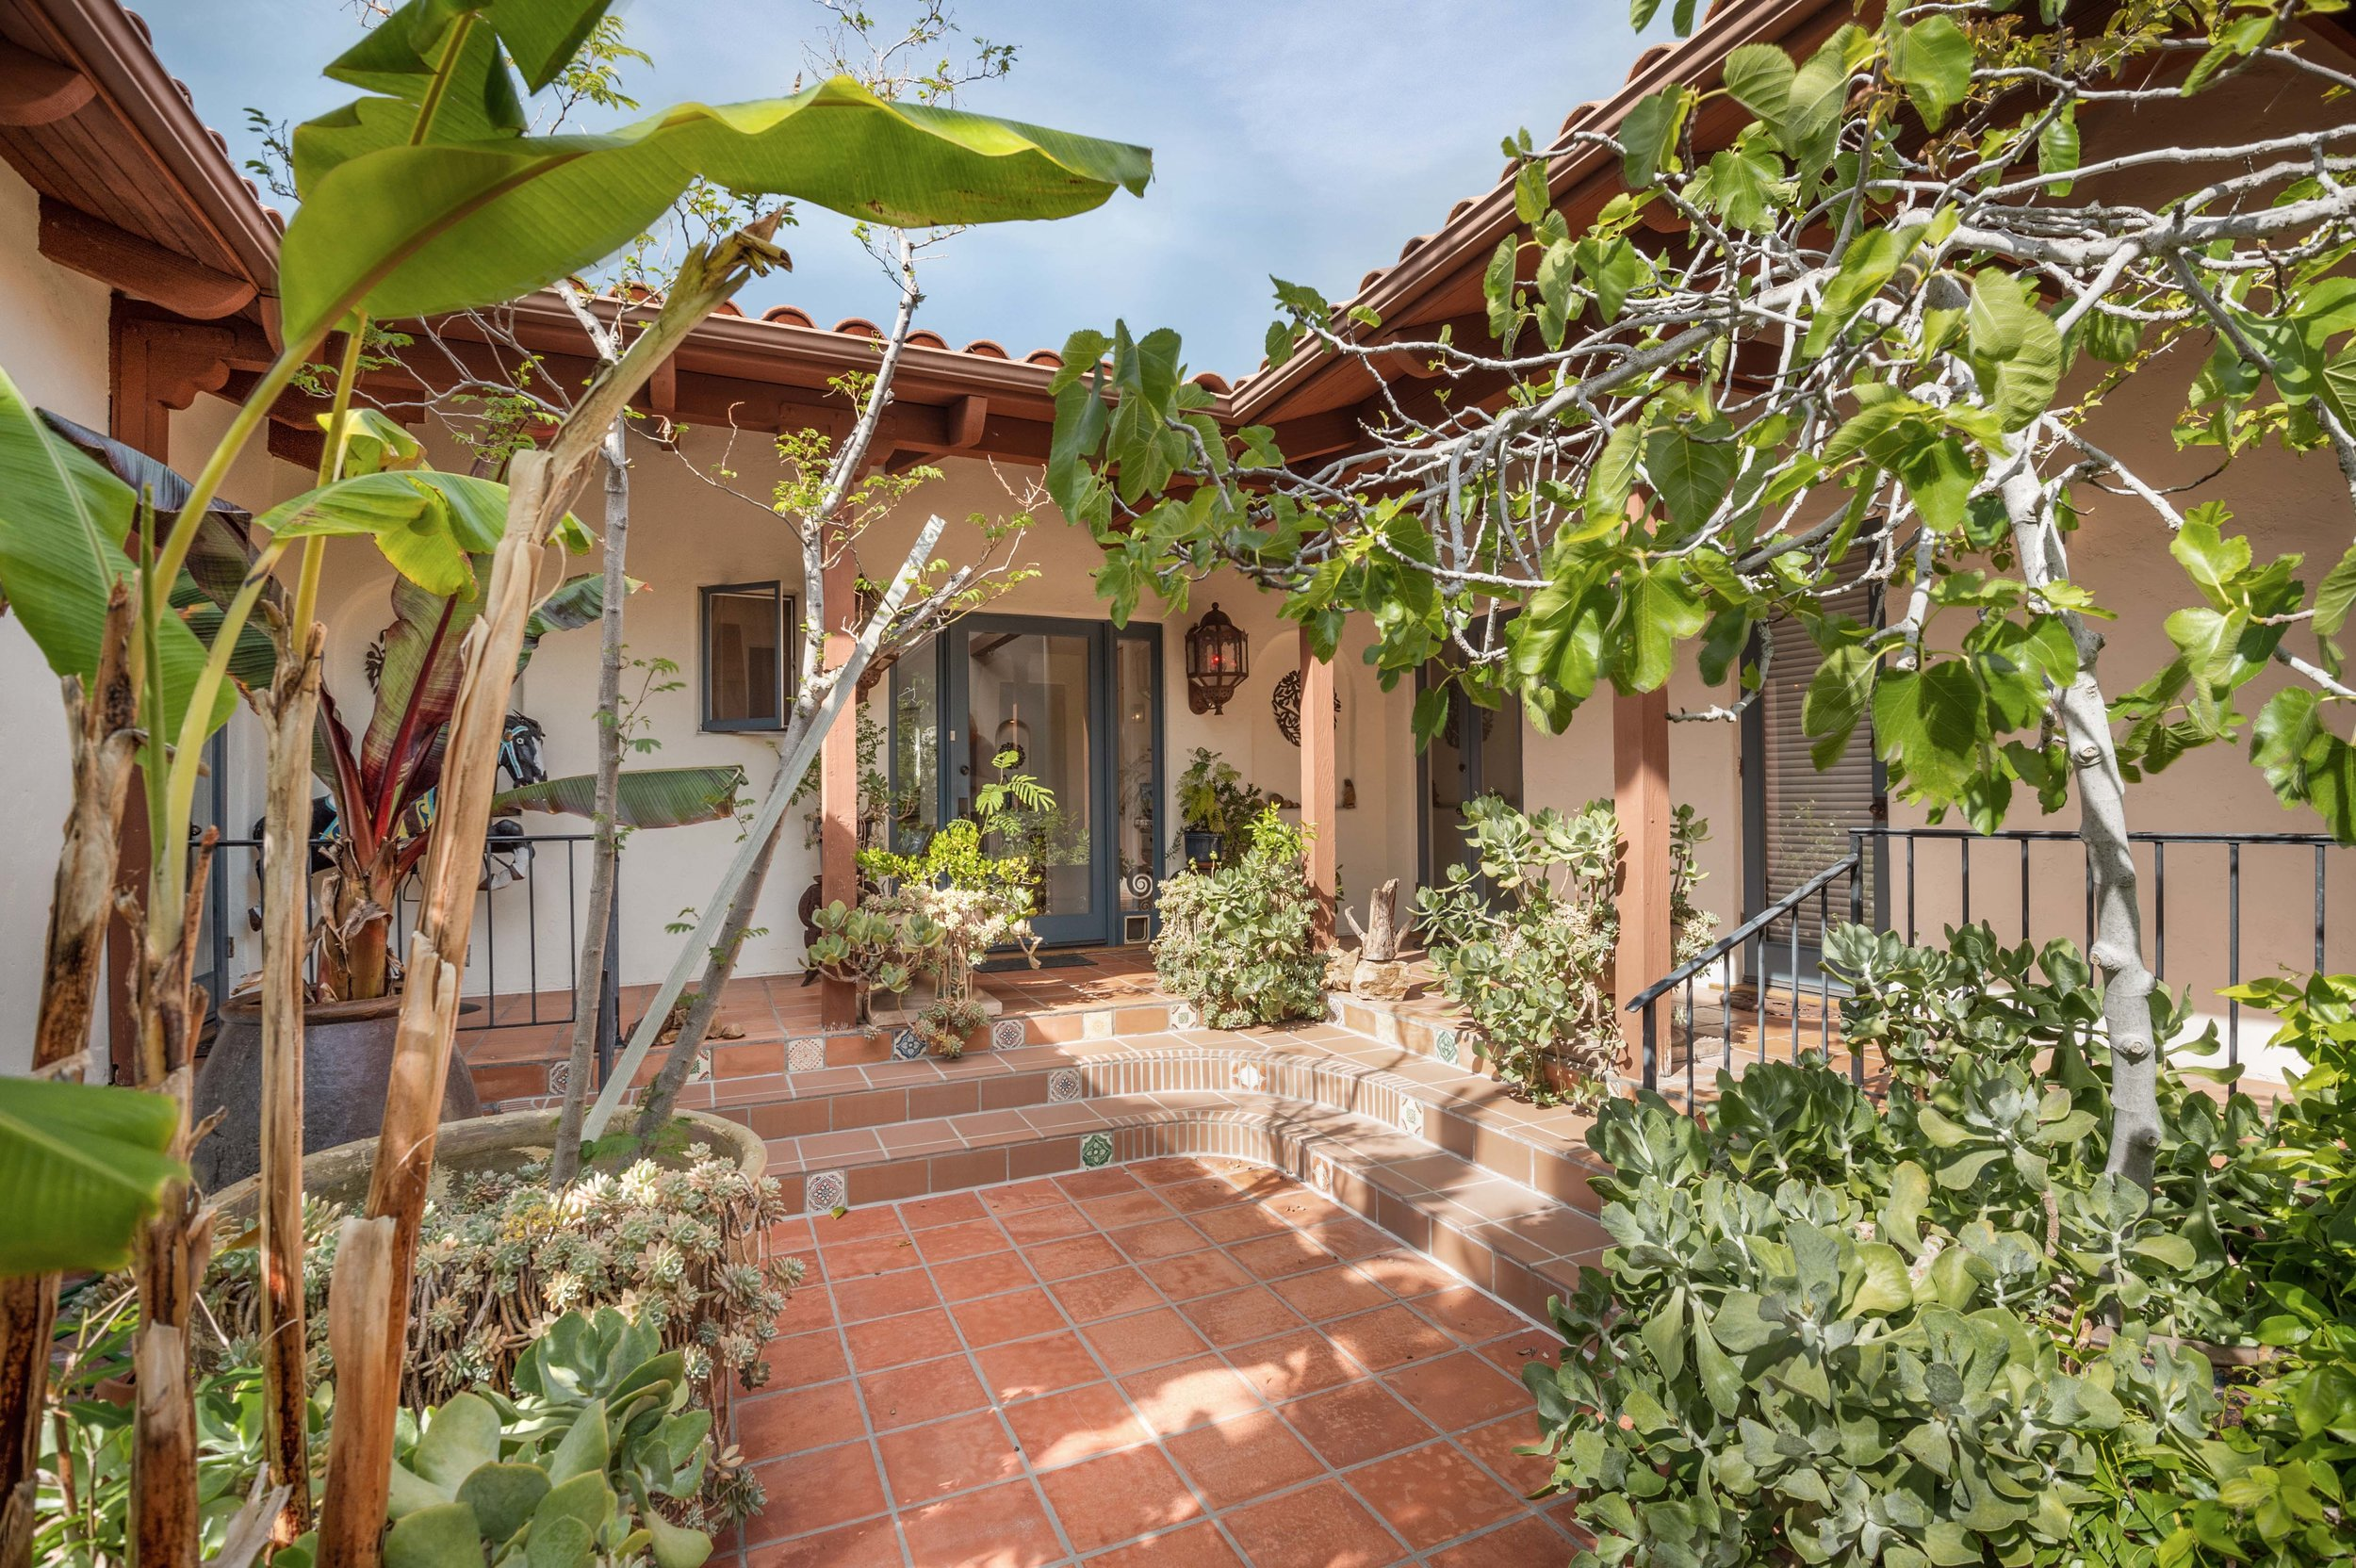 004 Courtyard 20333 Reigate Road Topanga For Sale Lease The Malibu Life Team Luxury Real Estate.jpg